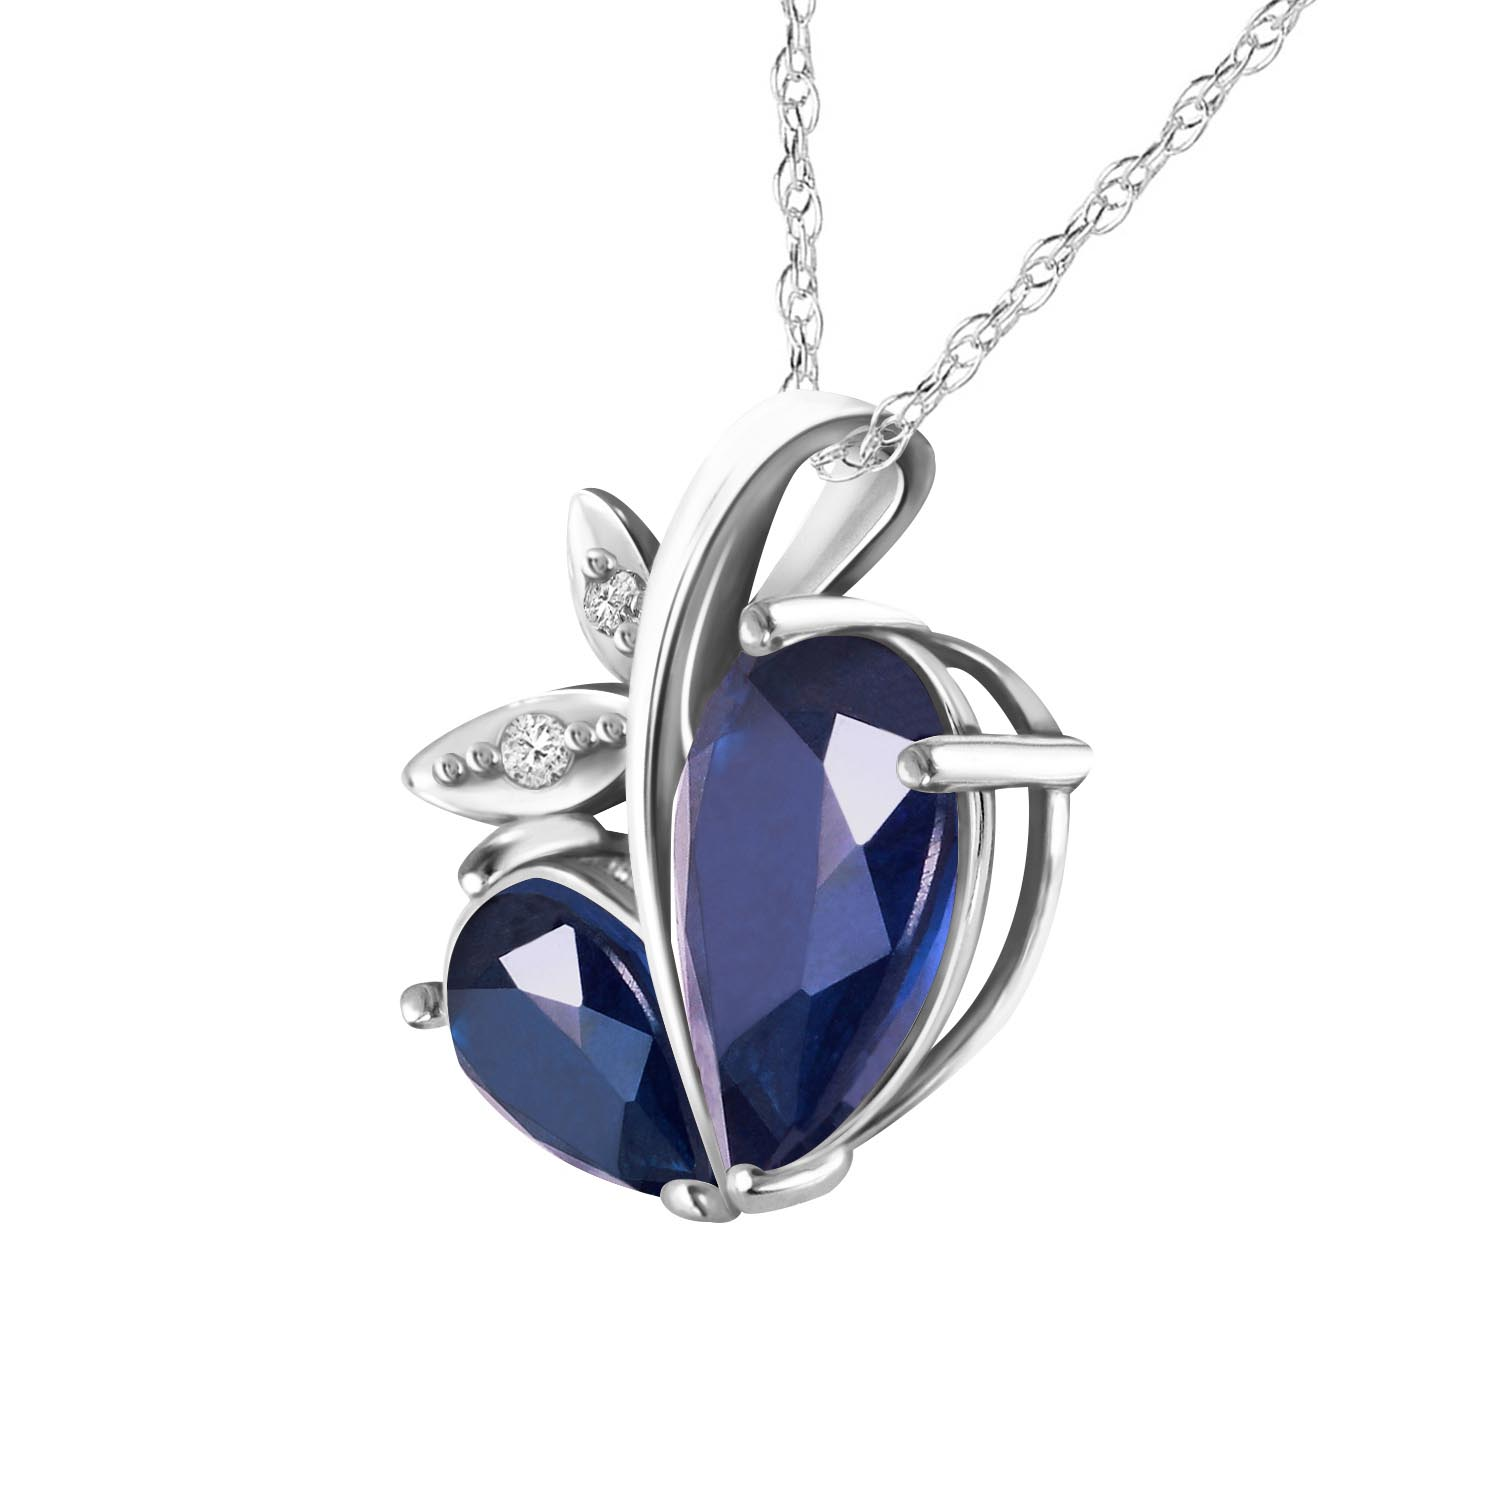 Sapphire & Diamond Eternal Pendant Necklace in 9ct White Gold